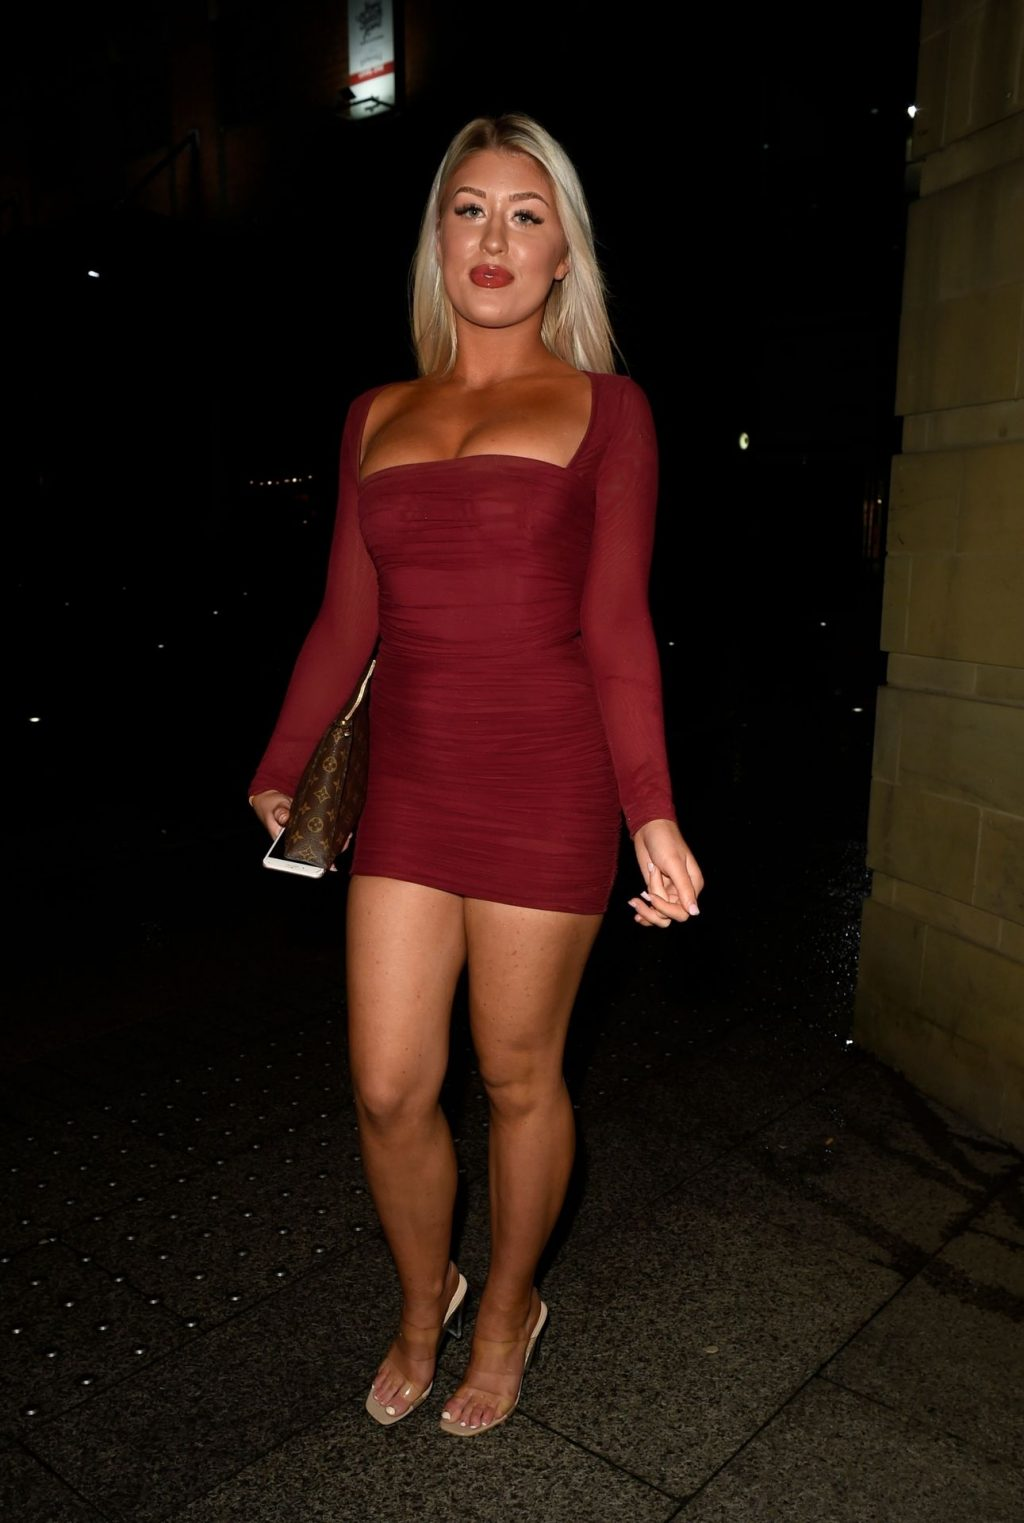 Eve Gale is Heading to China Whites in Manchester (17 Photos)